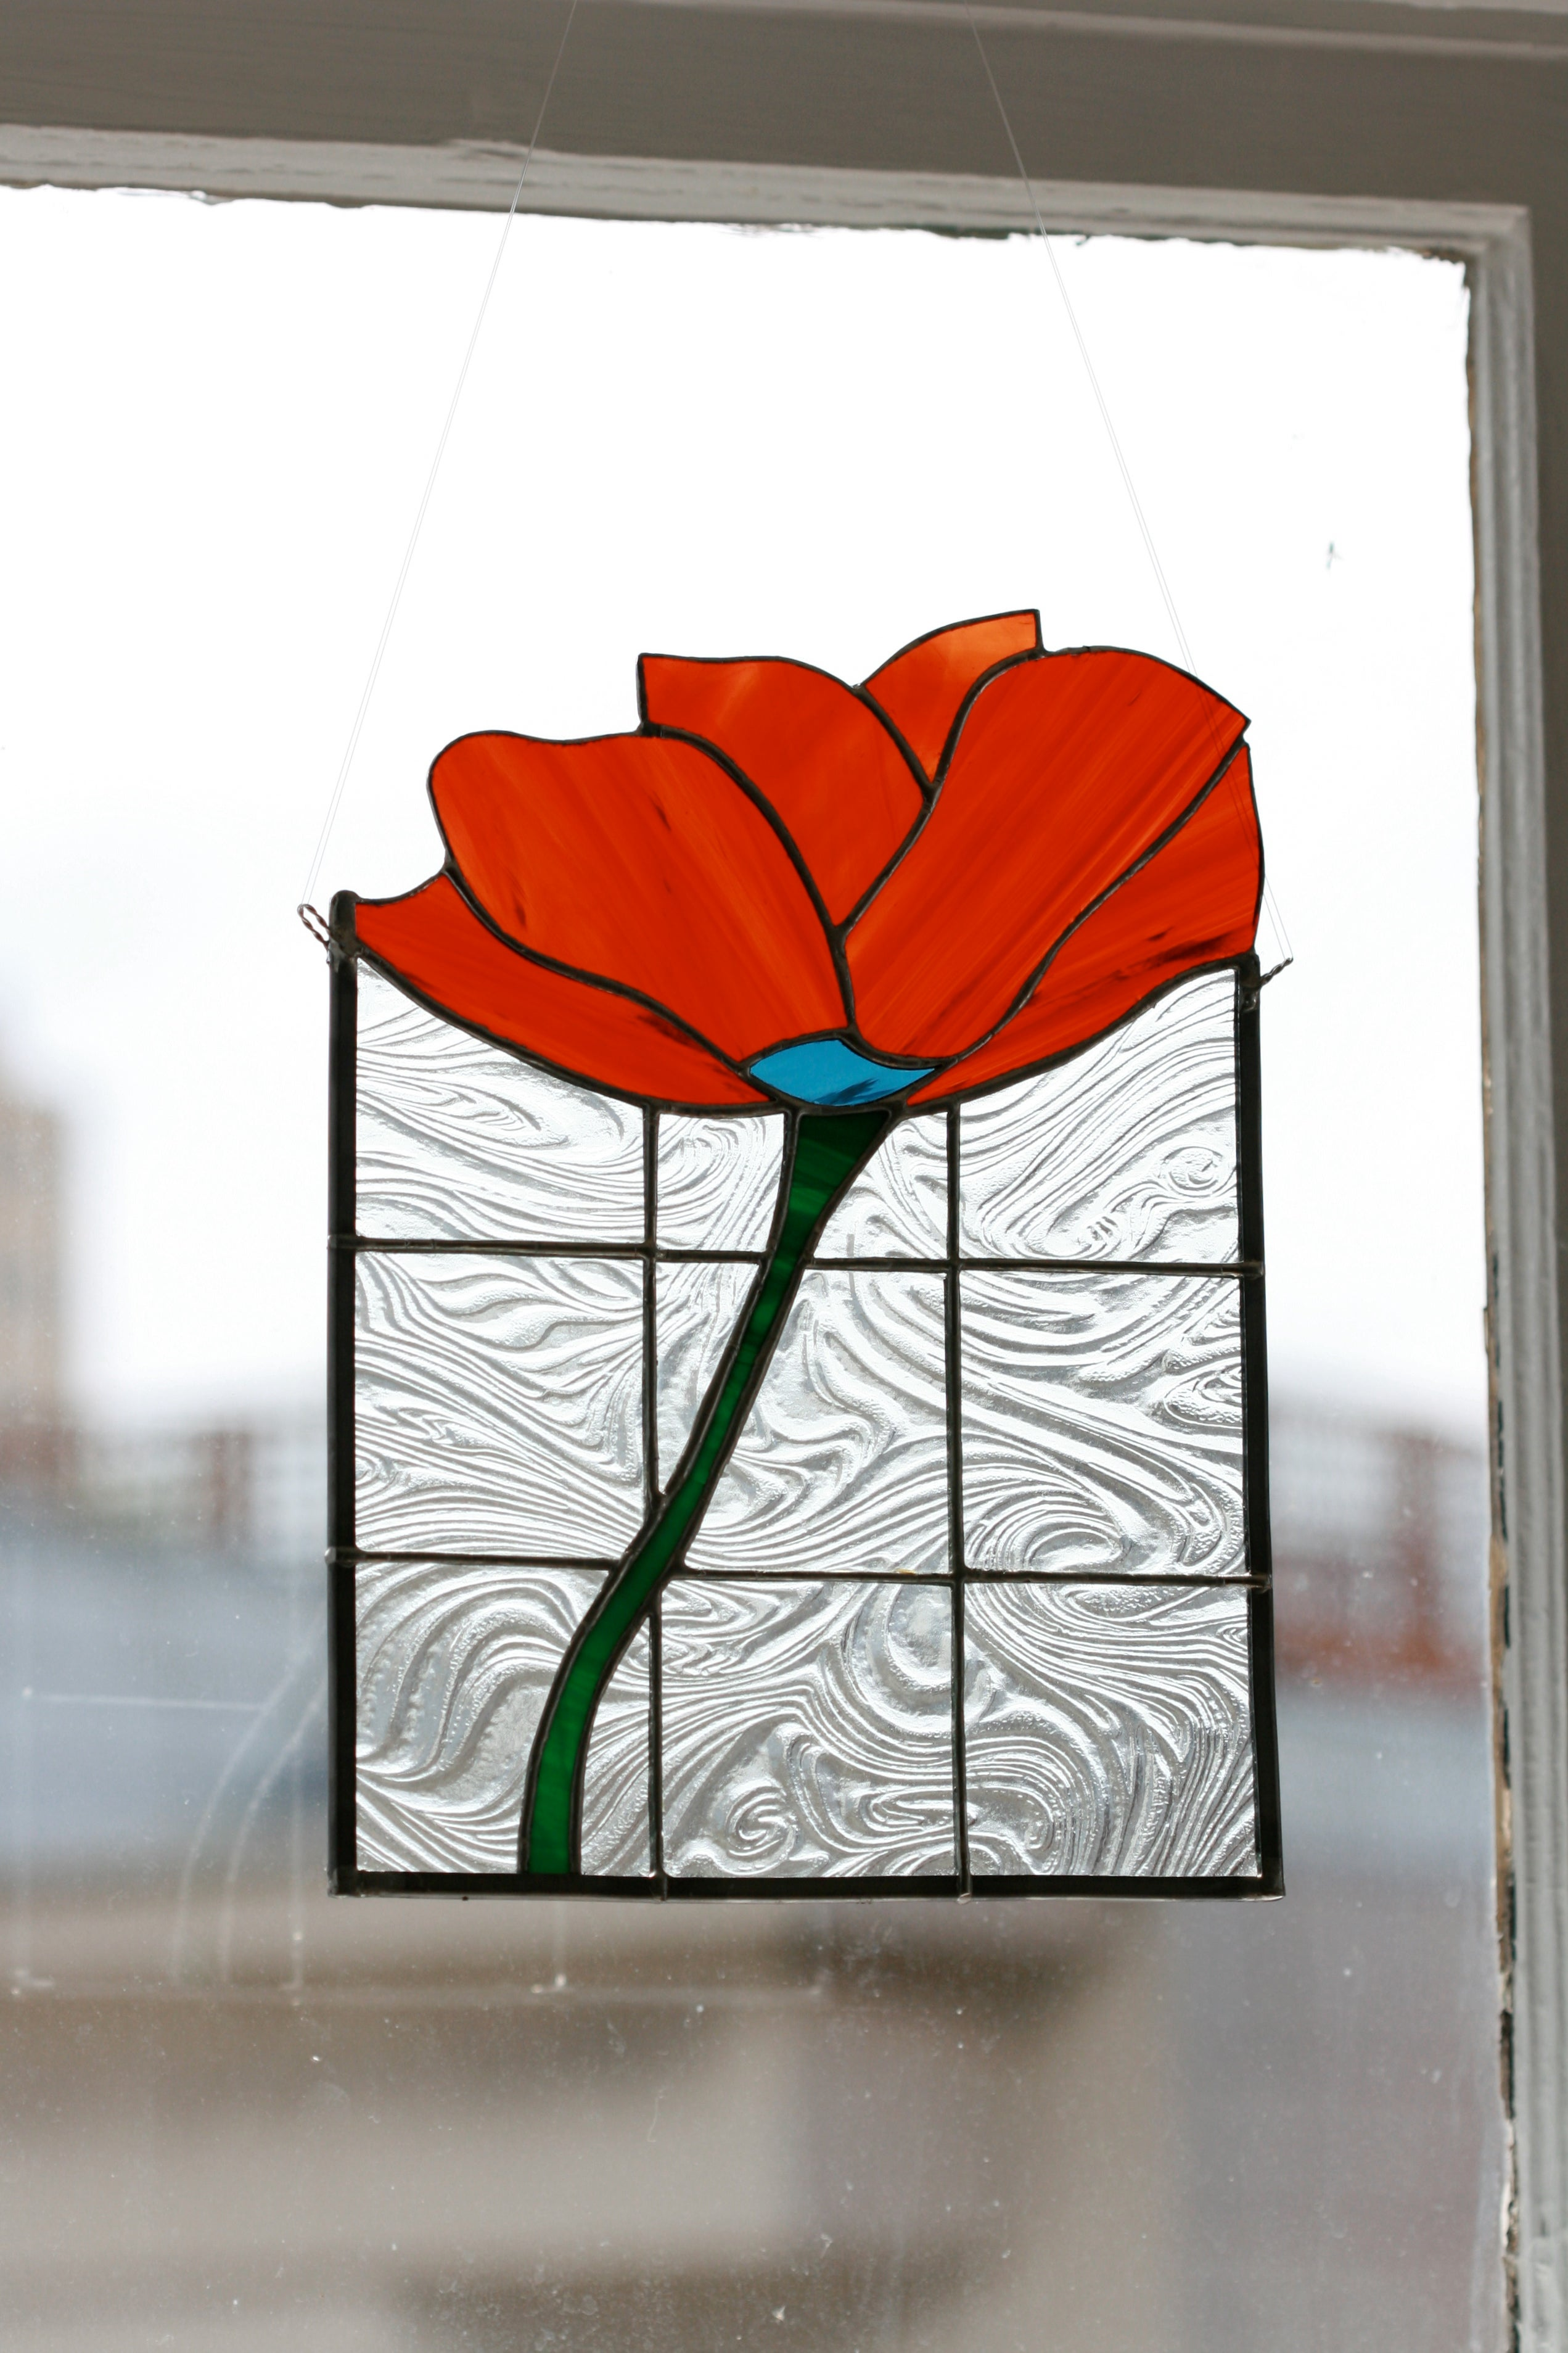 How To Stained Glass 9 Steps With Pictures Instructables